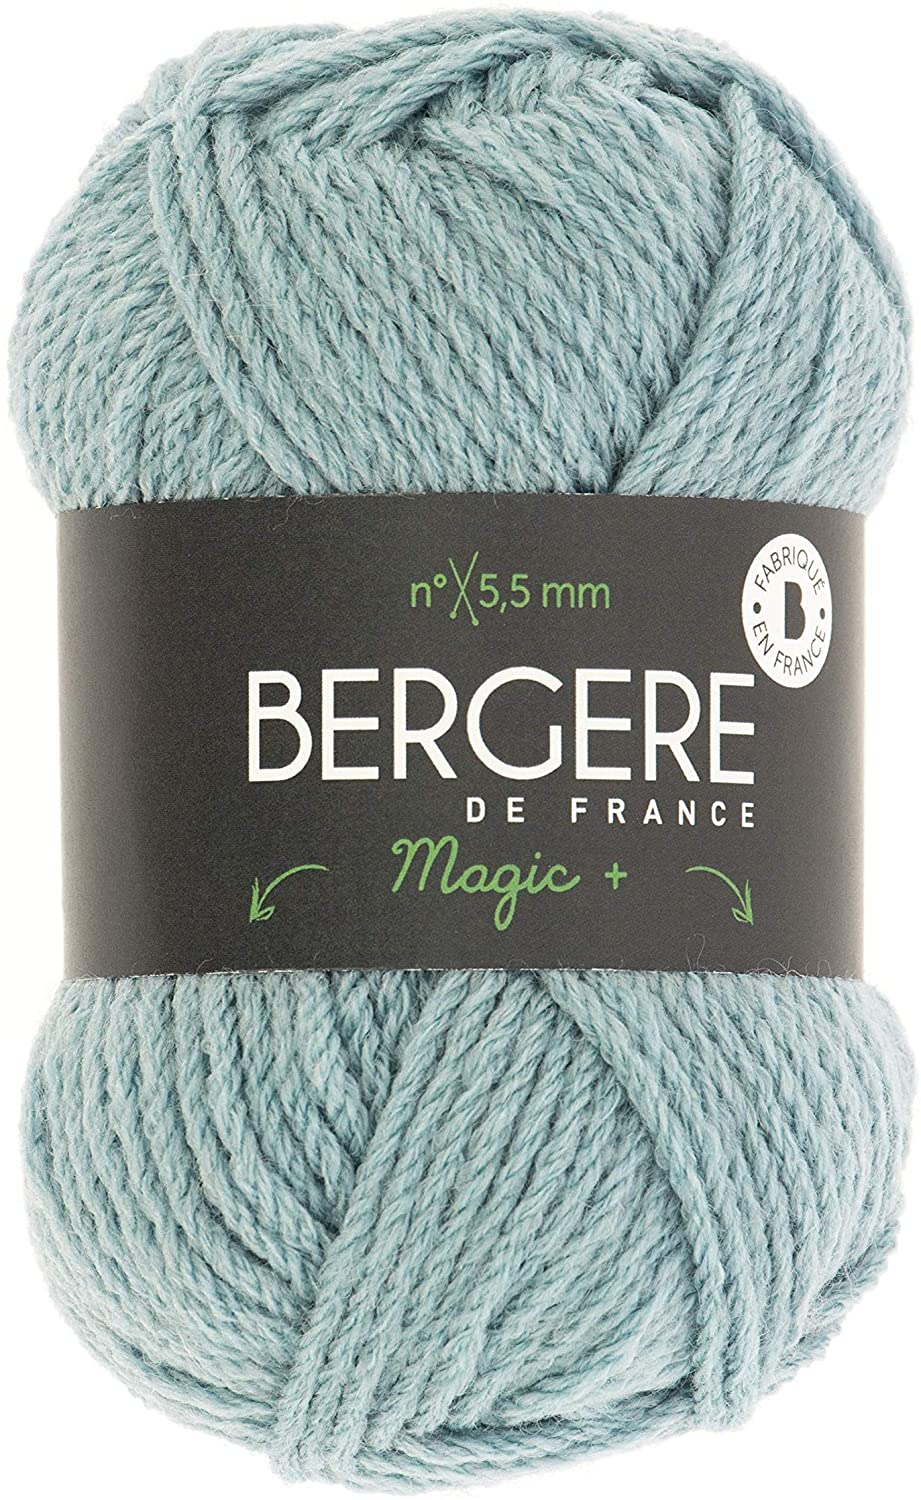 Bergere de France 34725 Magic Yarn-Bleu Gris